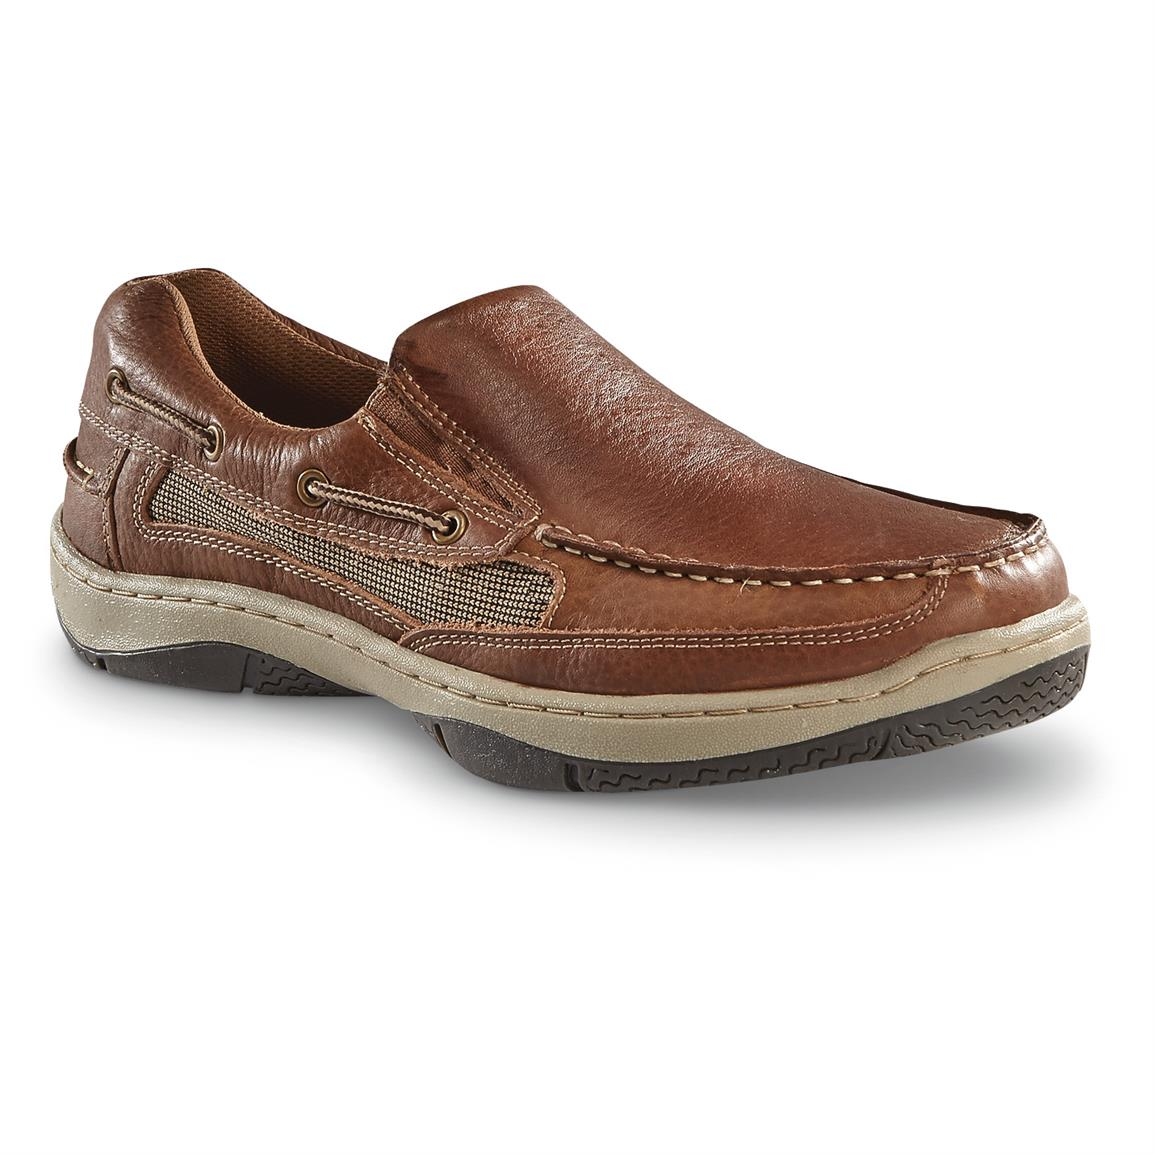 Guide Gear Men's Slip On Boat Shoes, Tan